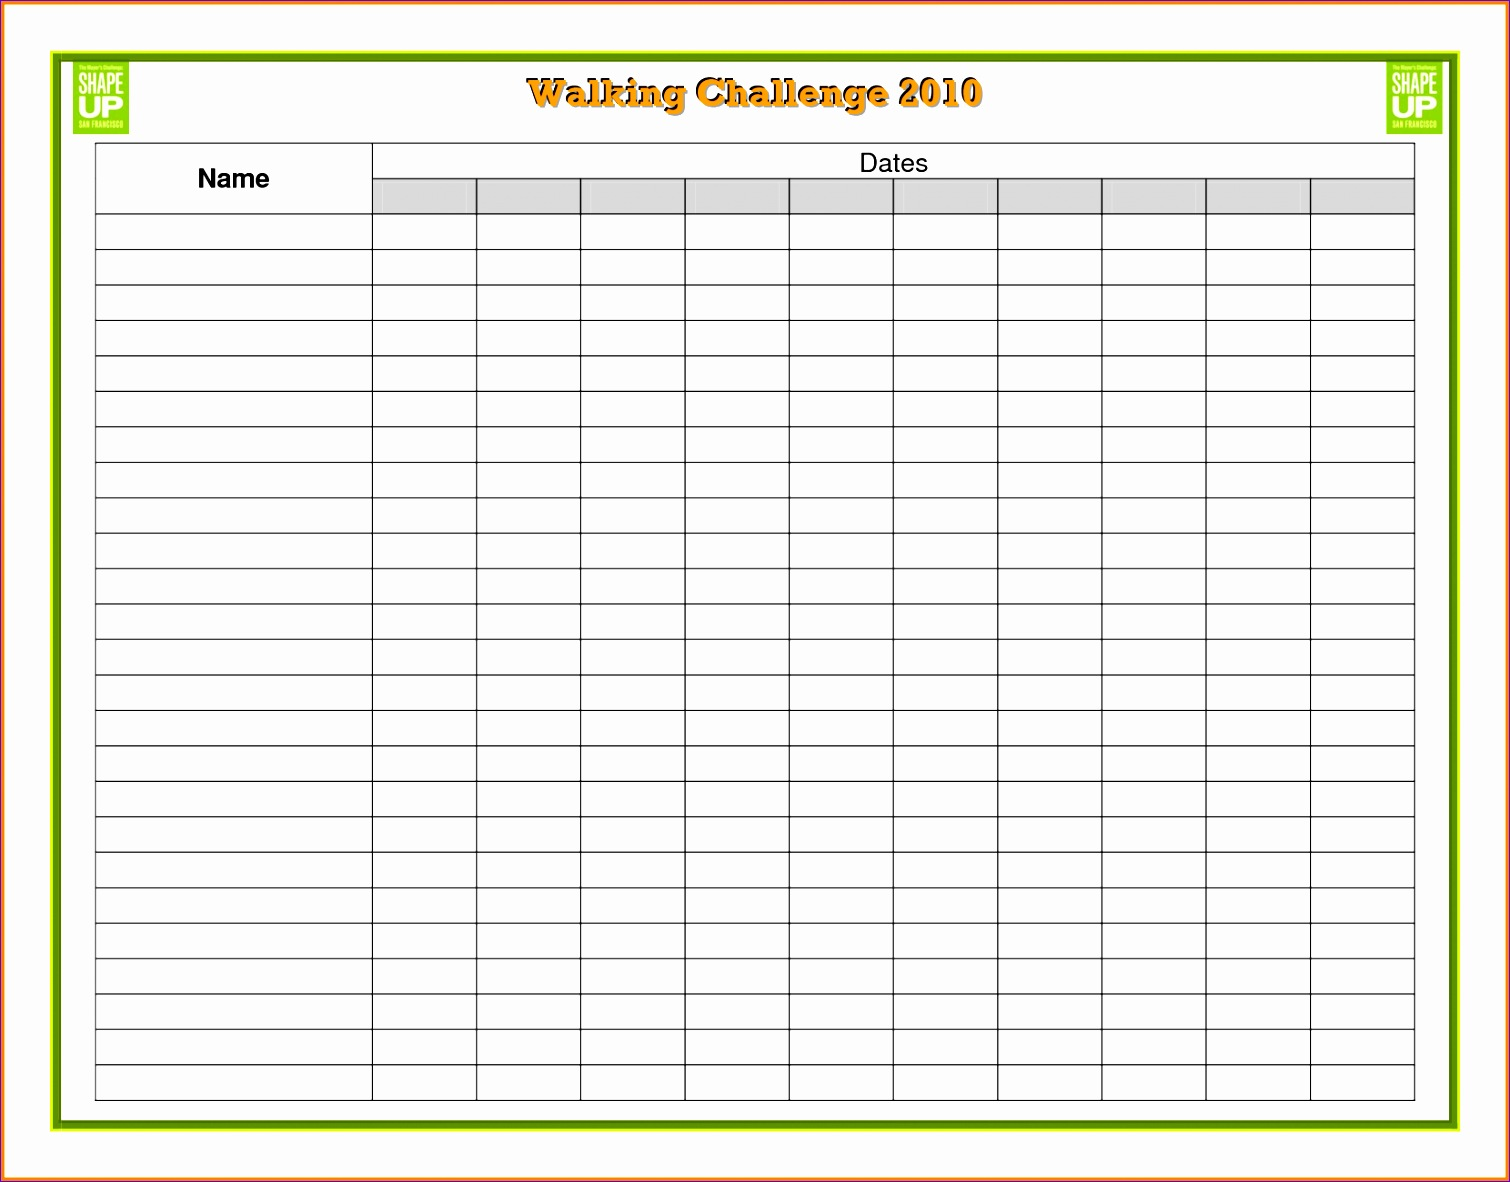 mileage template excel nnfa5 inspirational search results for mileage log template calendar 2015